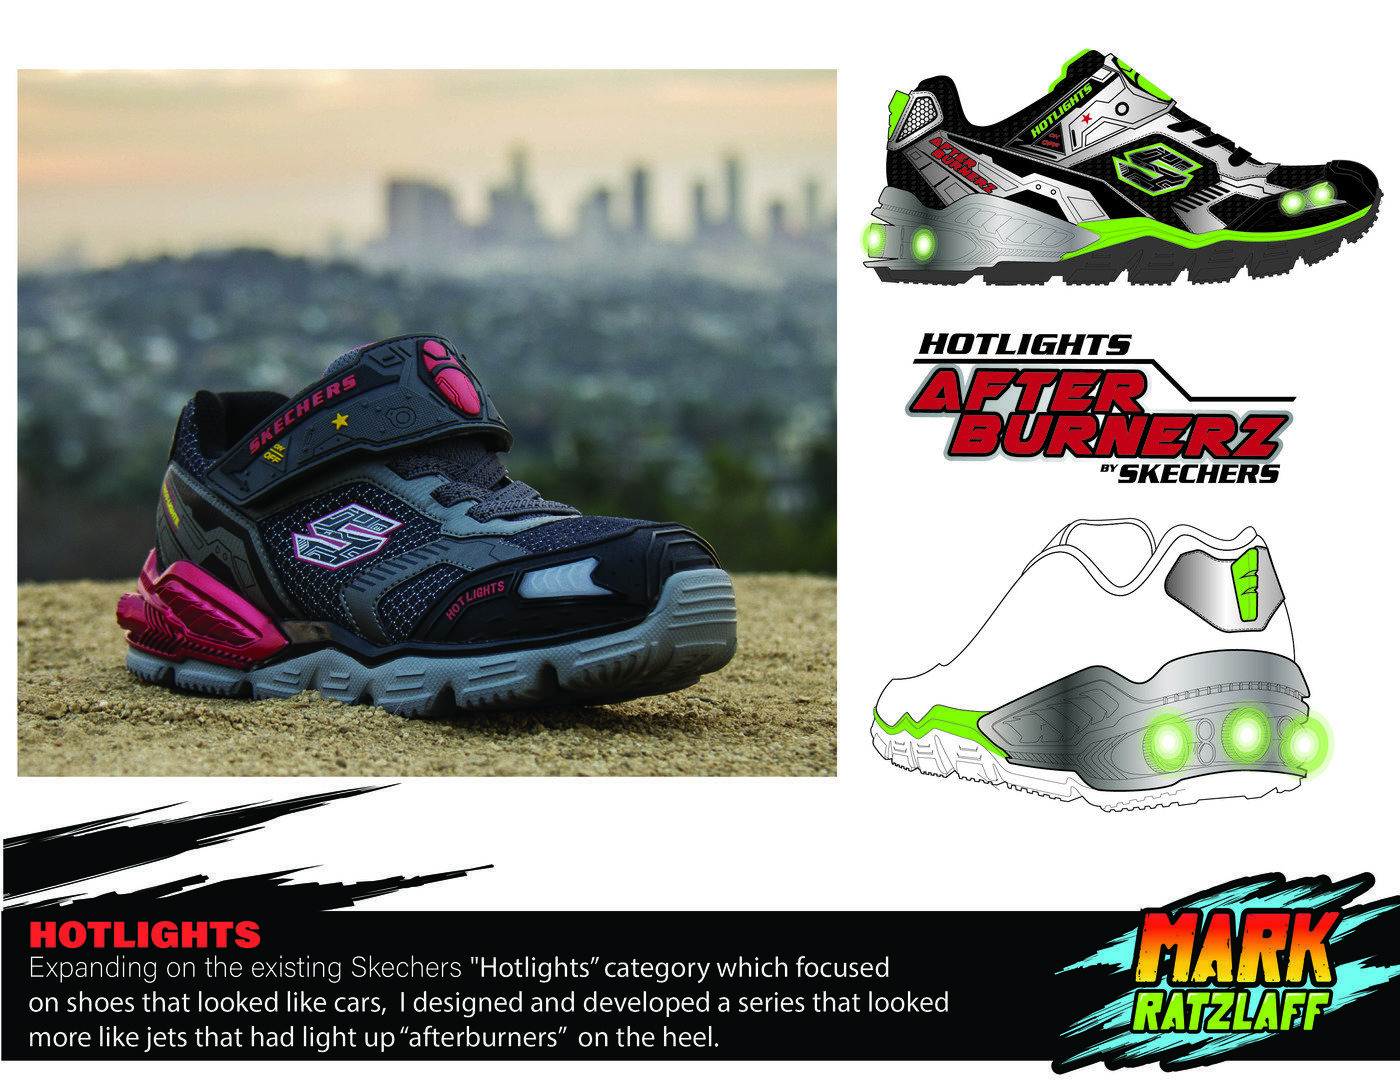 Shoe styles at Skechers by Mark Ratzlaff at